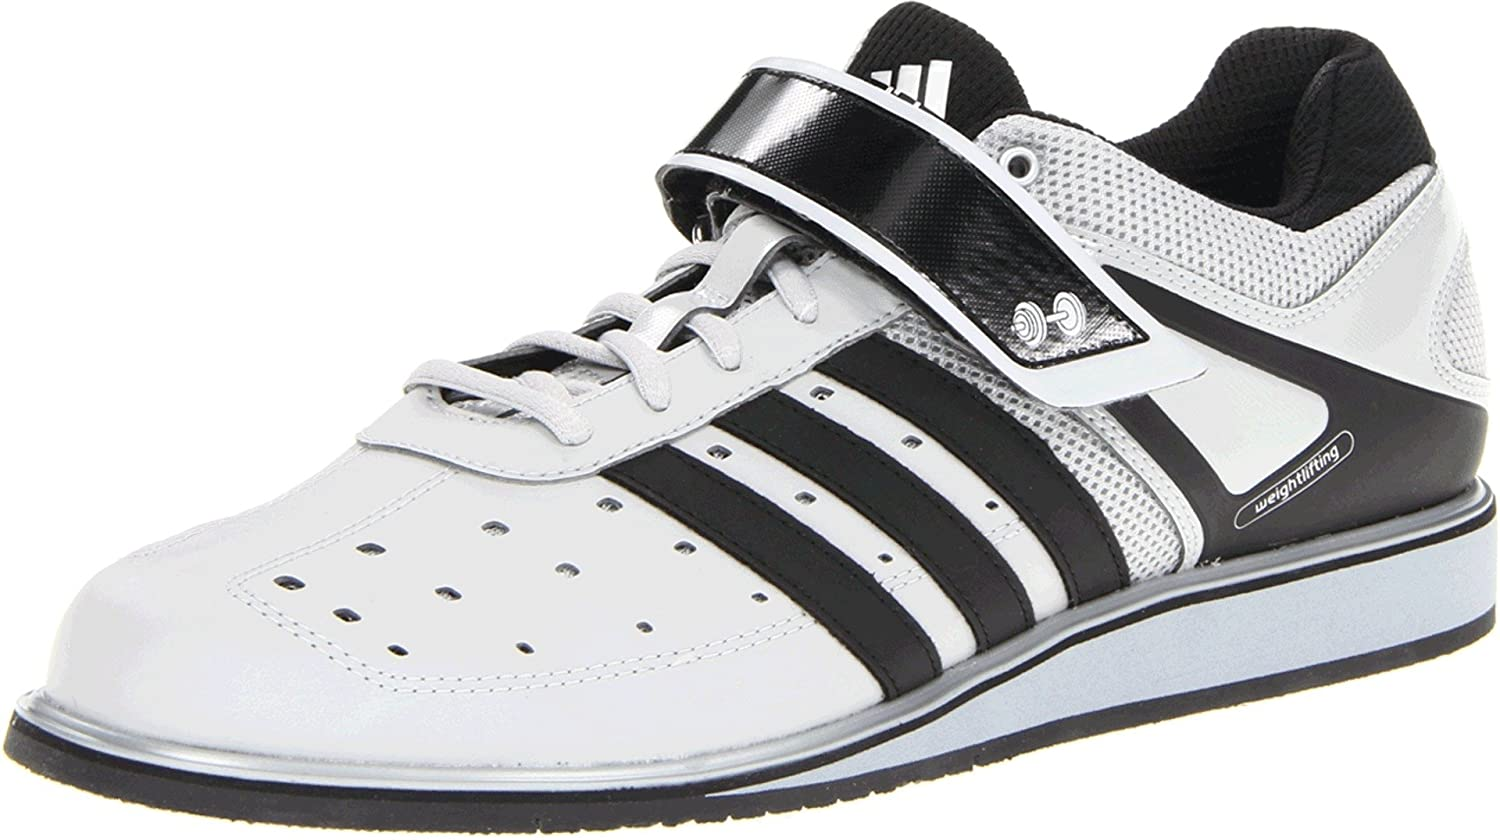 adidas powerlift trainer